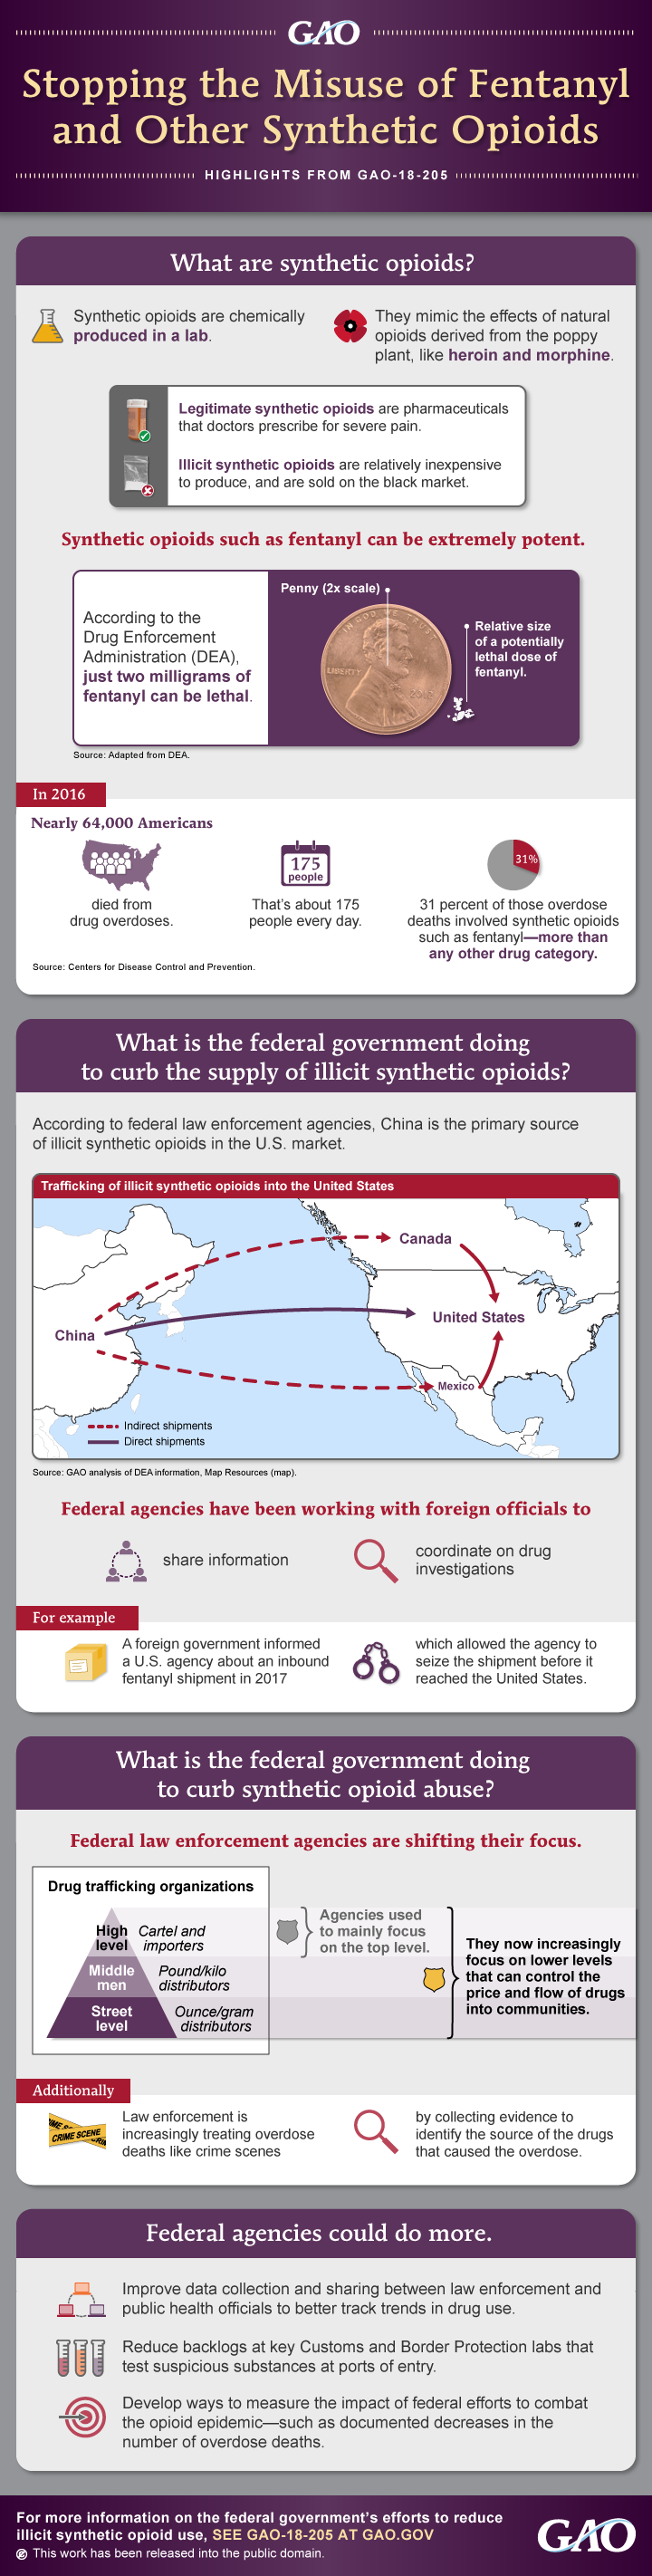 INFOGRAPHIC: Stopping the Misuse of Fentanyl and Other Synthetic Opioids